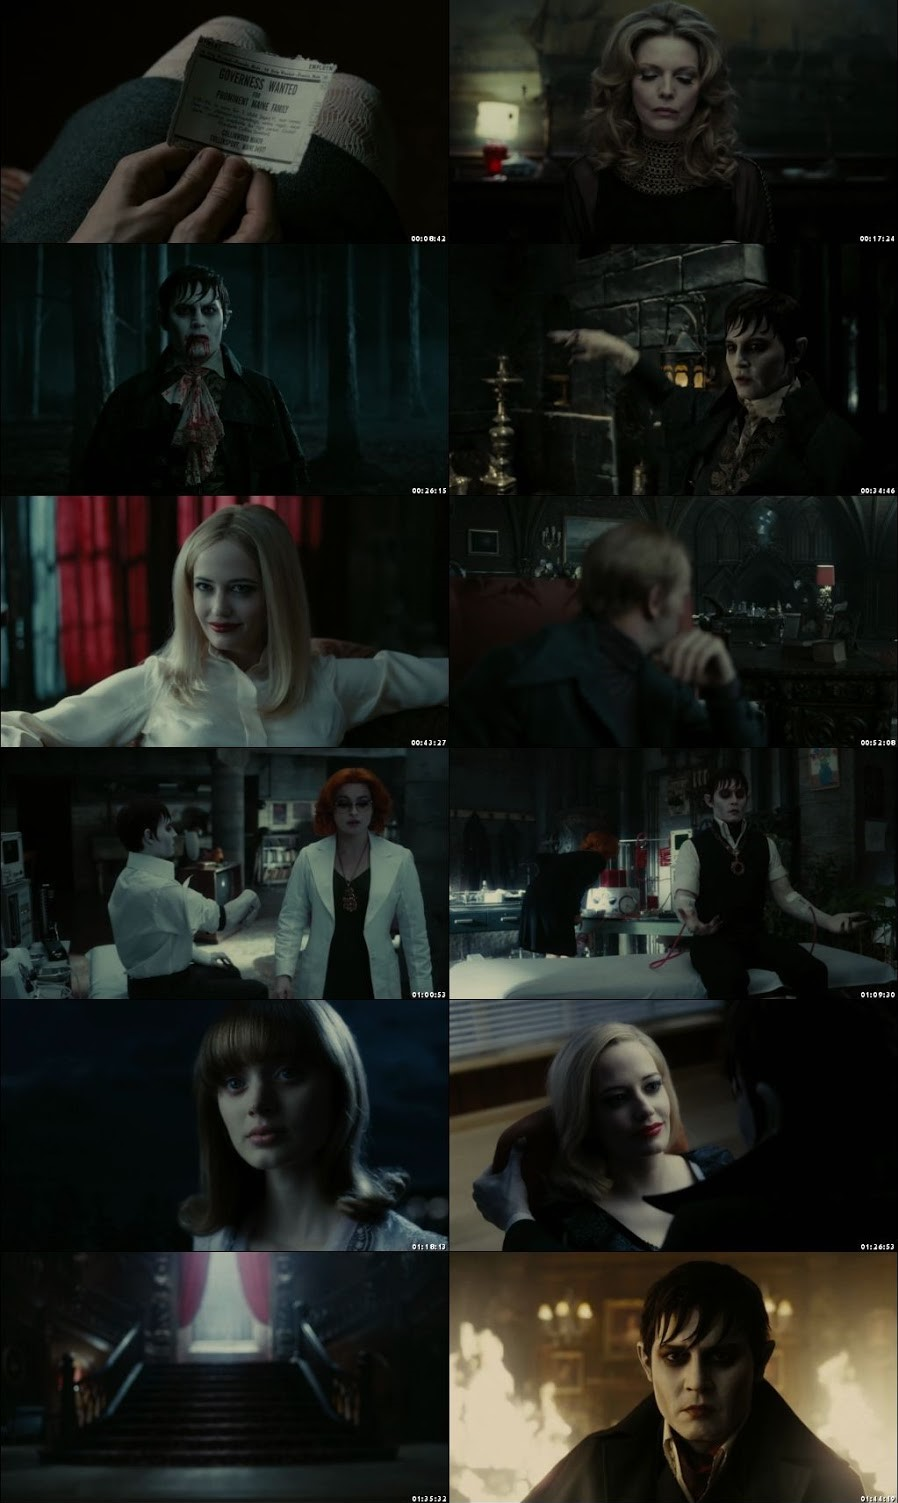 Dark Shadows 2012 Full Movie Online Watch